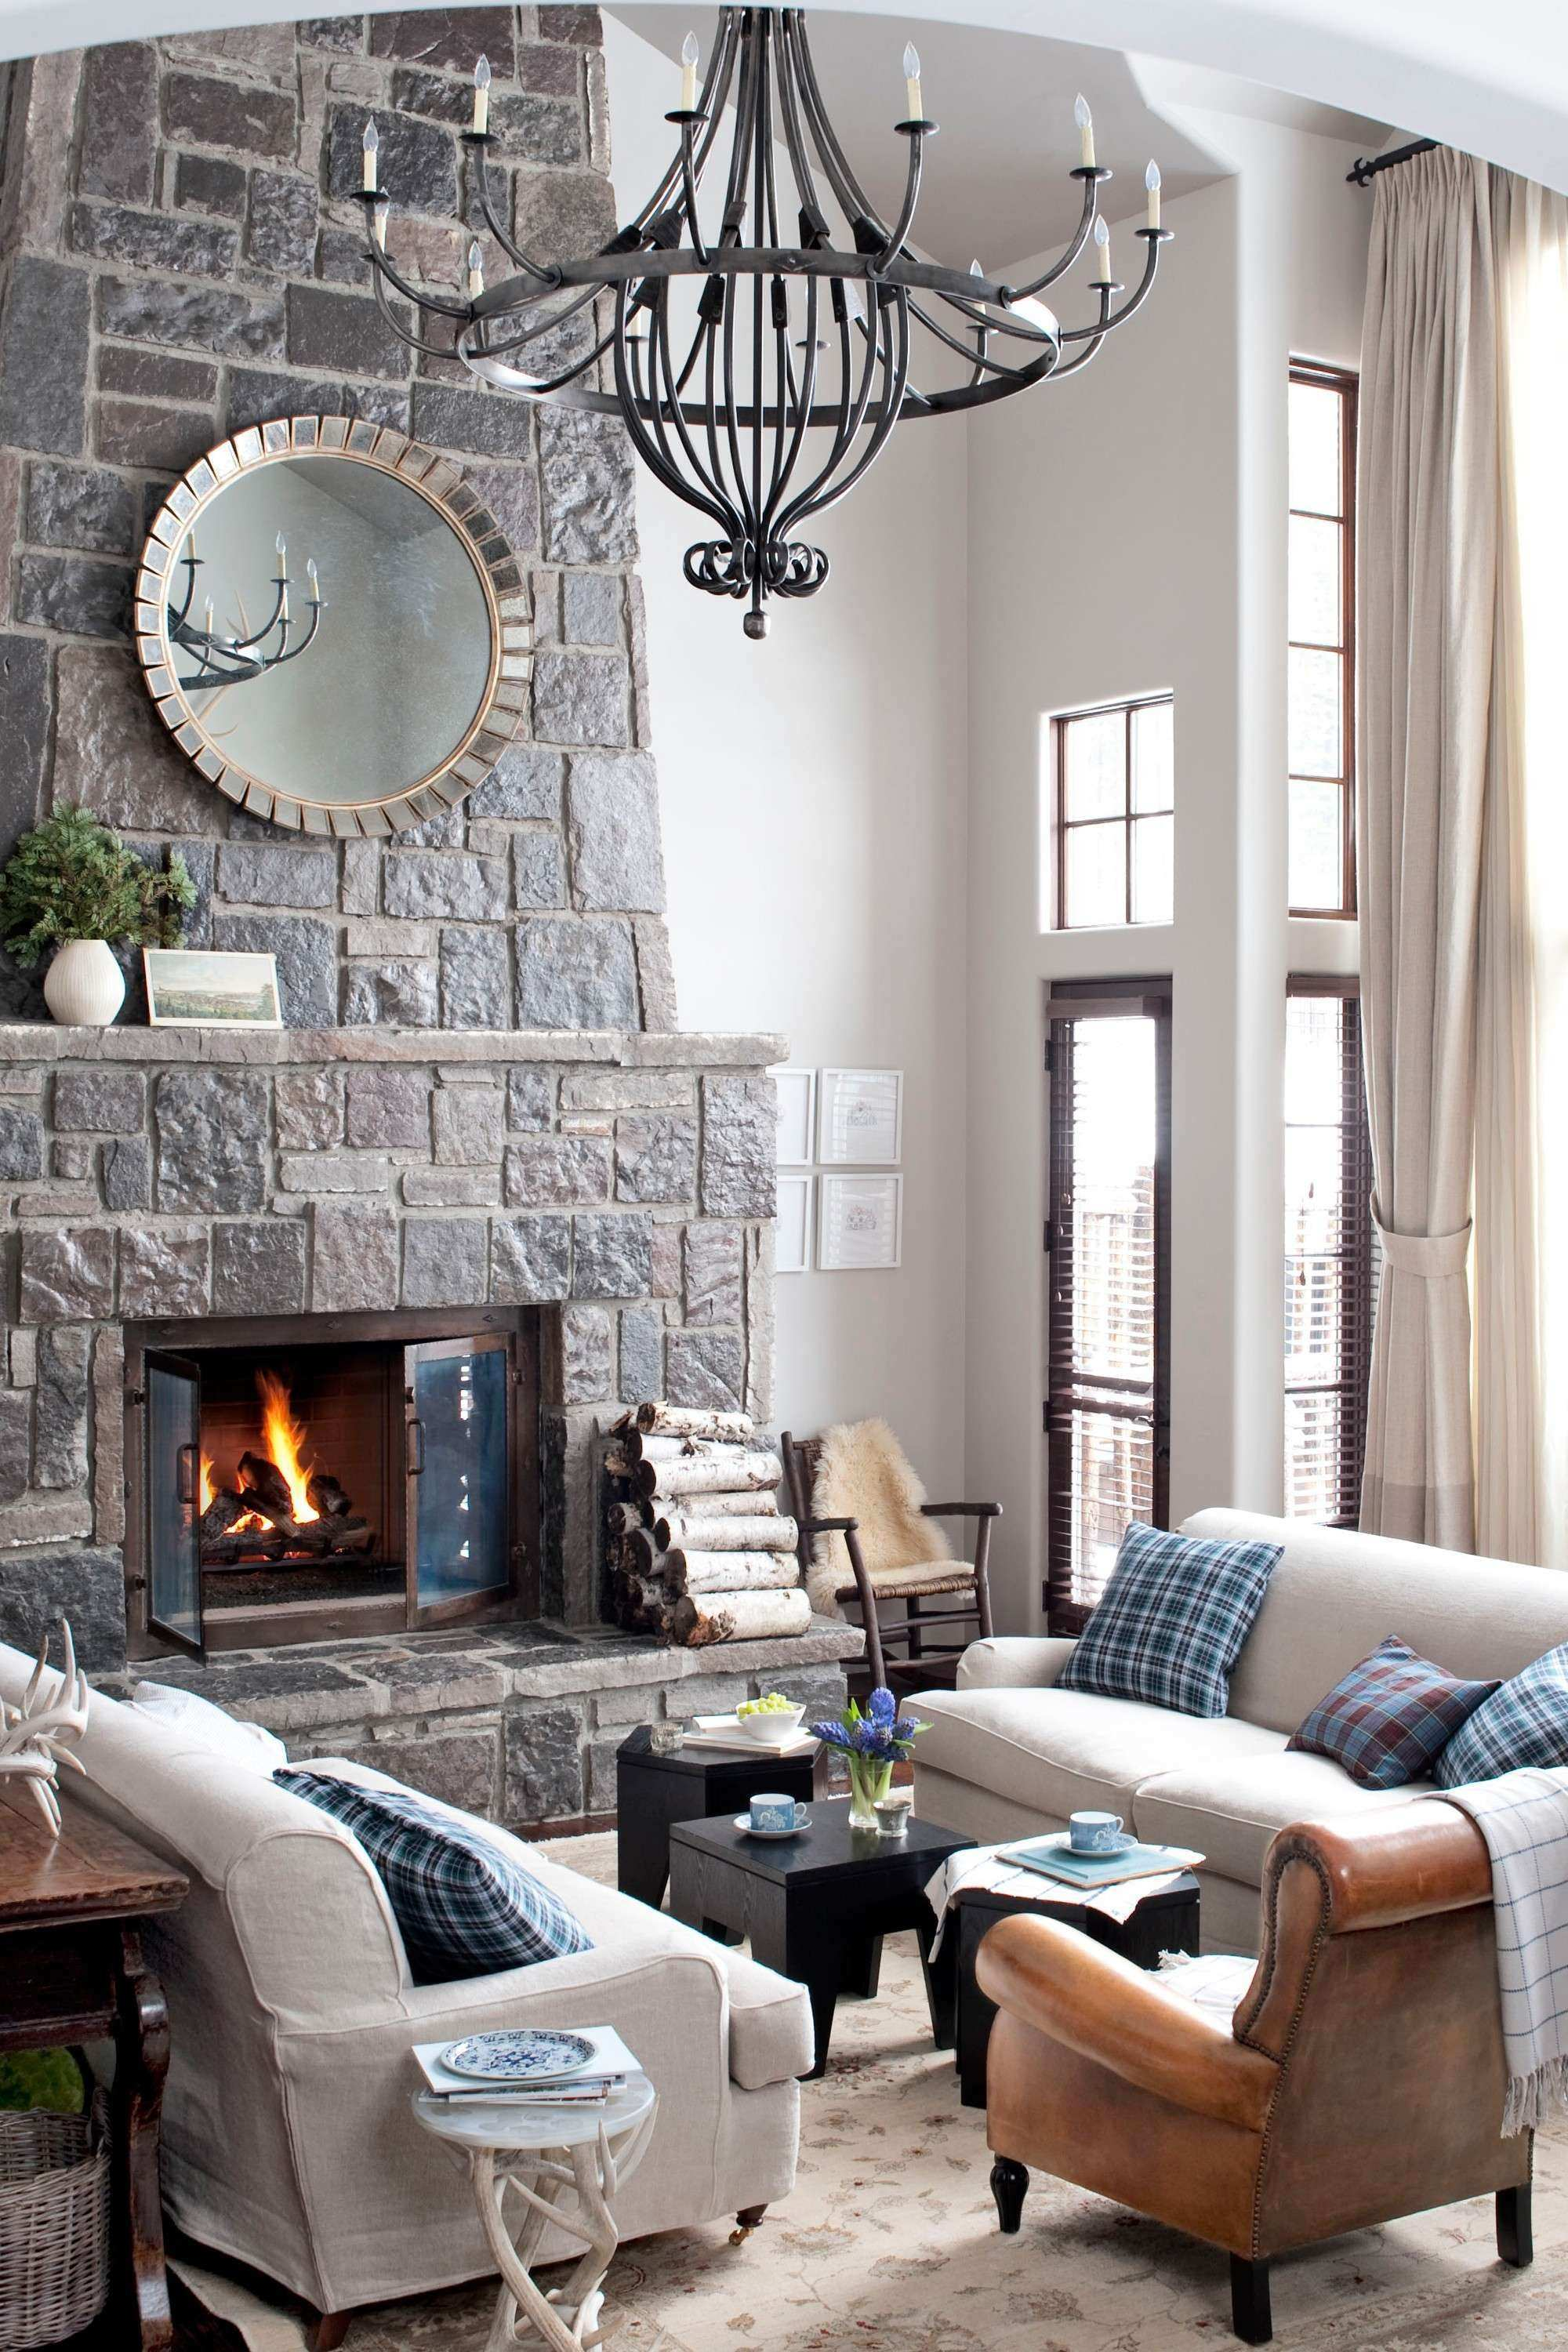 50 Luxury Wall Design Ideas for Living Room